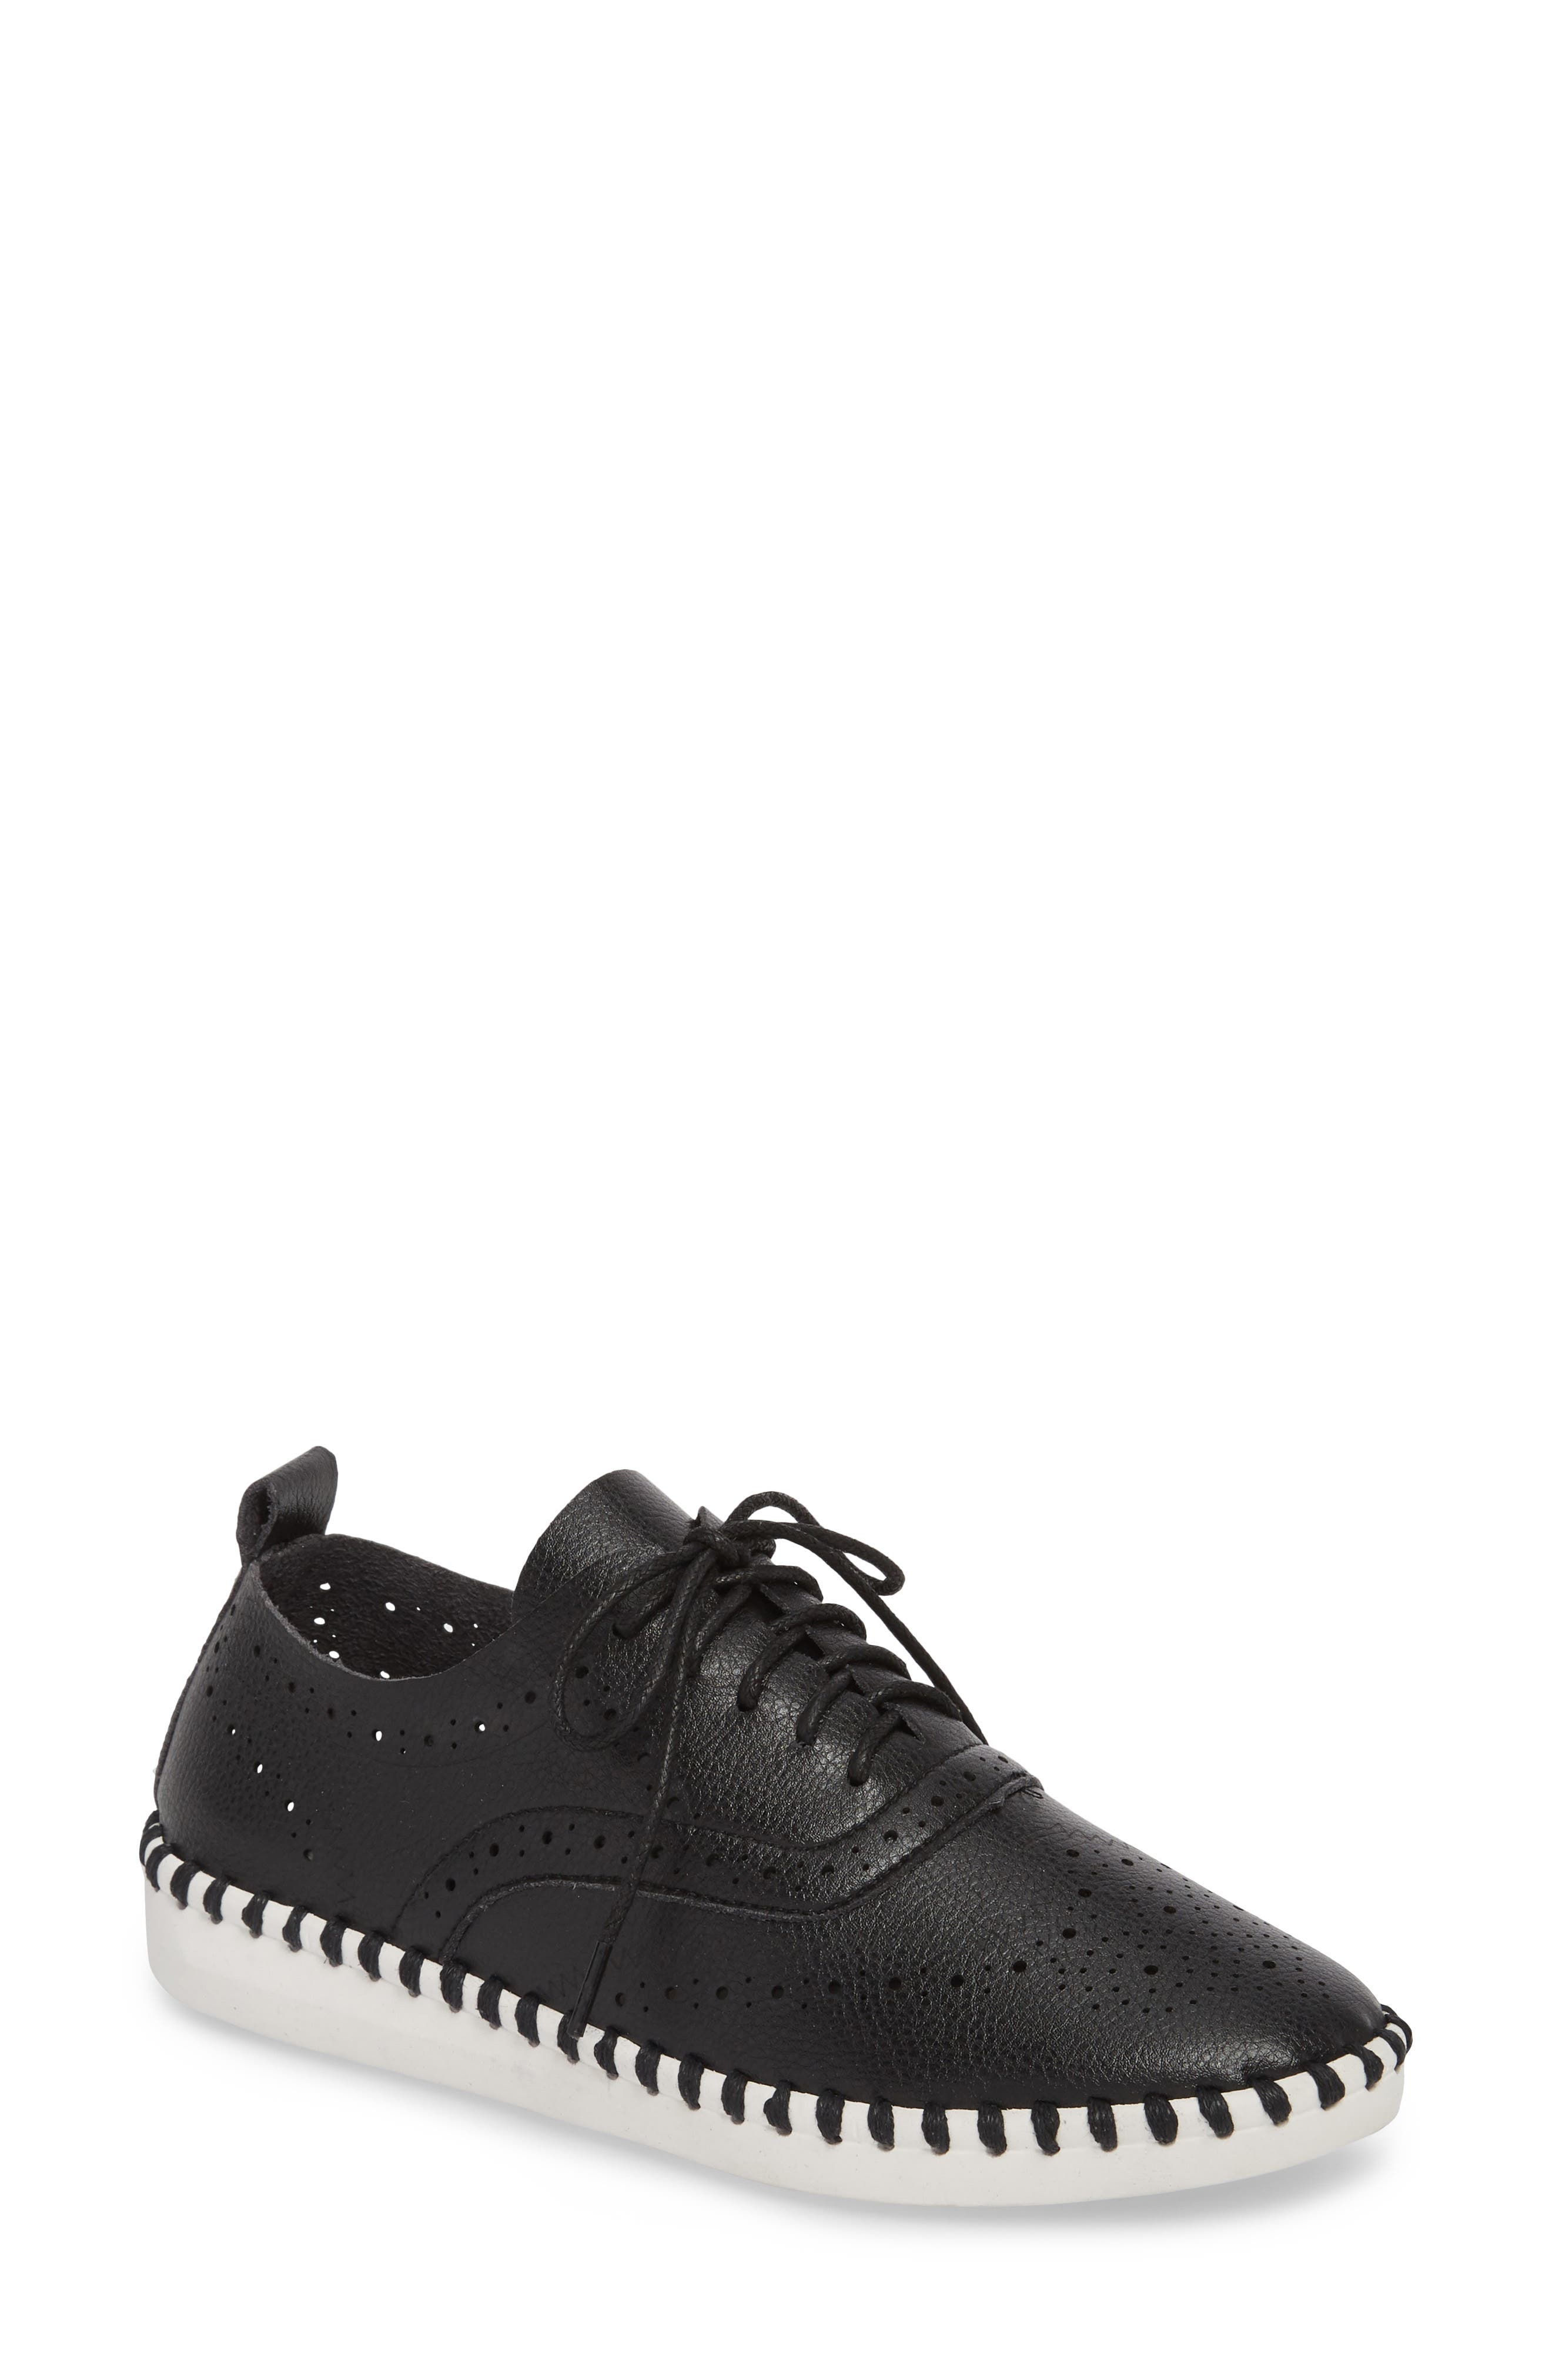 Salinas Waterproof Brogue Lace-Up Sneaker,                             Main thumbnail 1, color,                             BLACK FAUX LEATHER